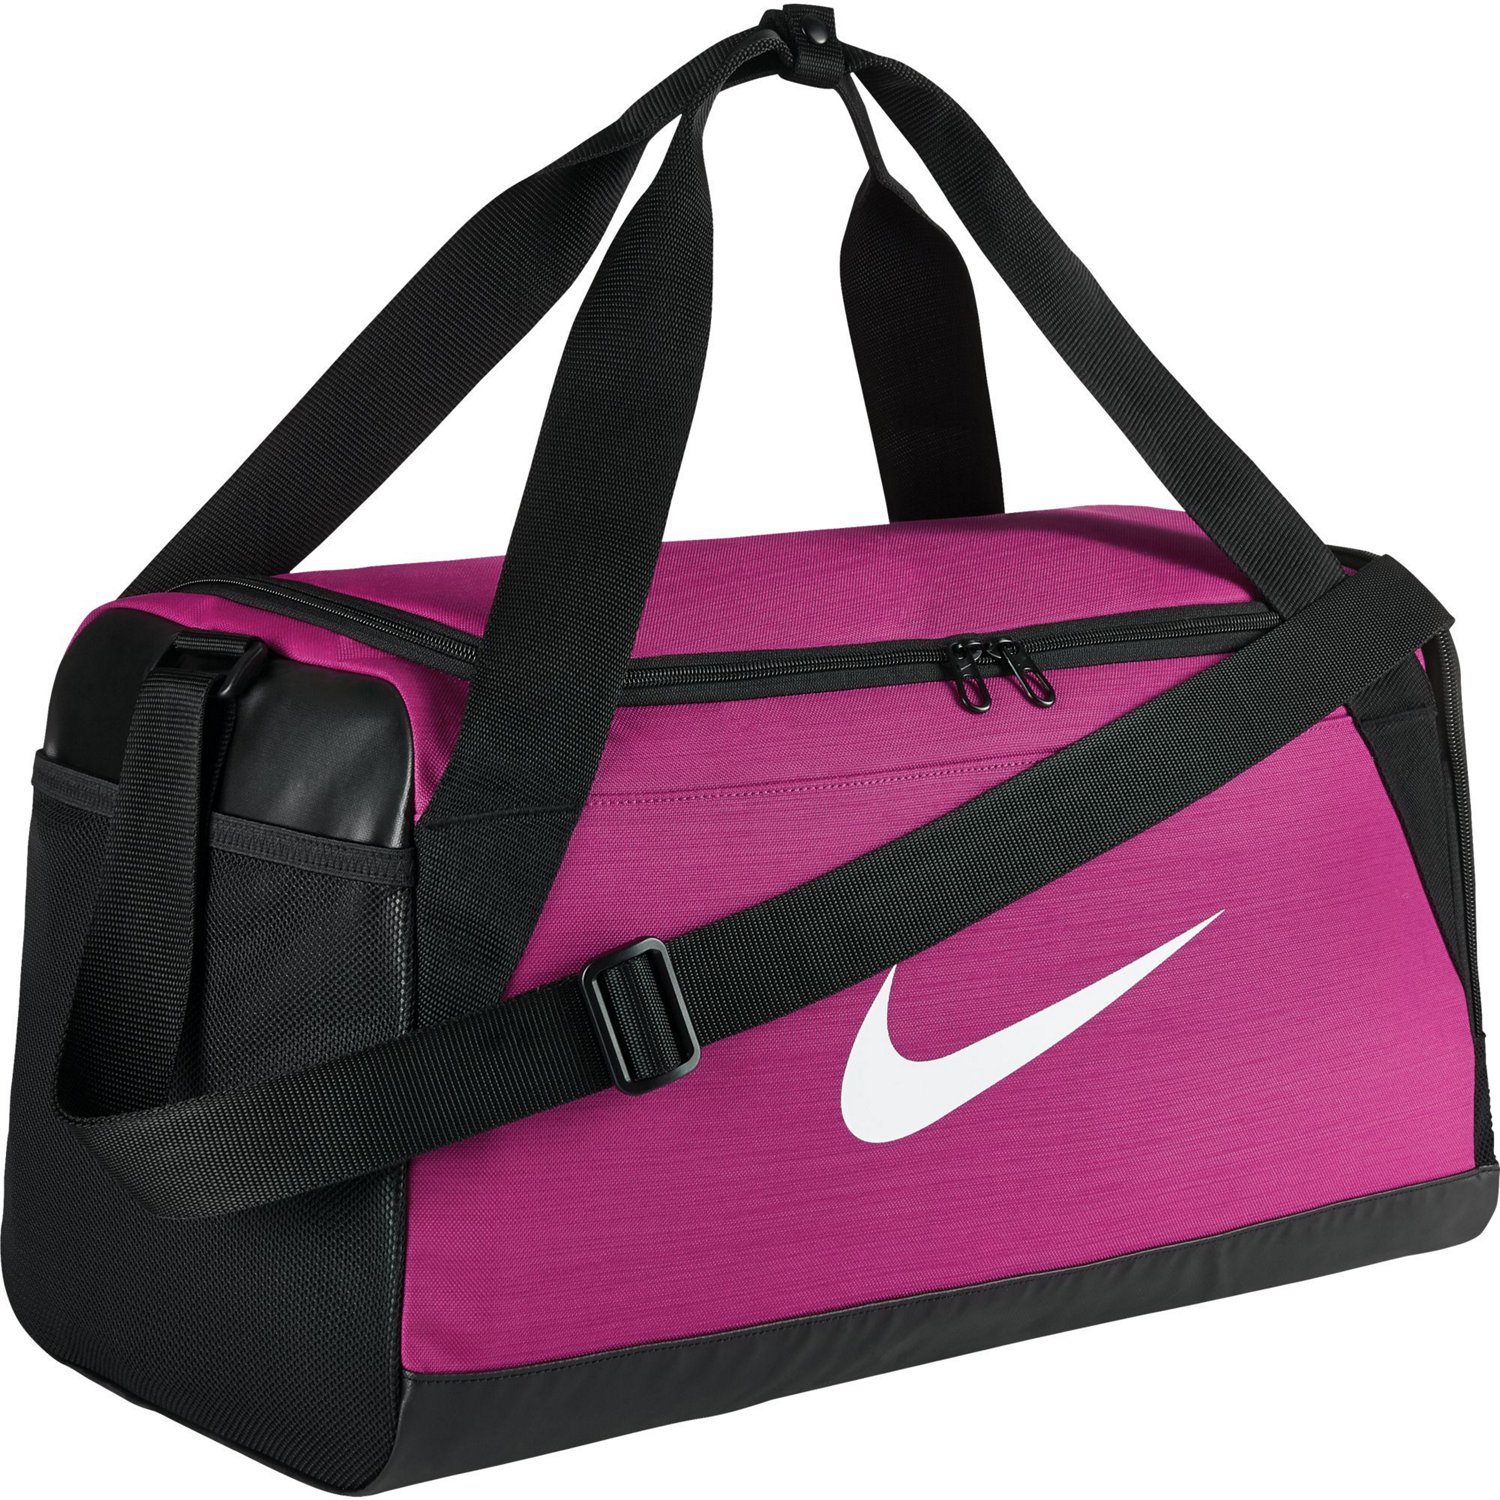 676ee639705 Display product reviews for Nike Brasilia Small Duffel Bag